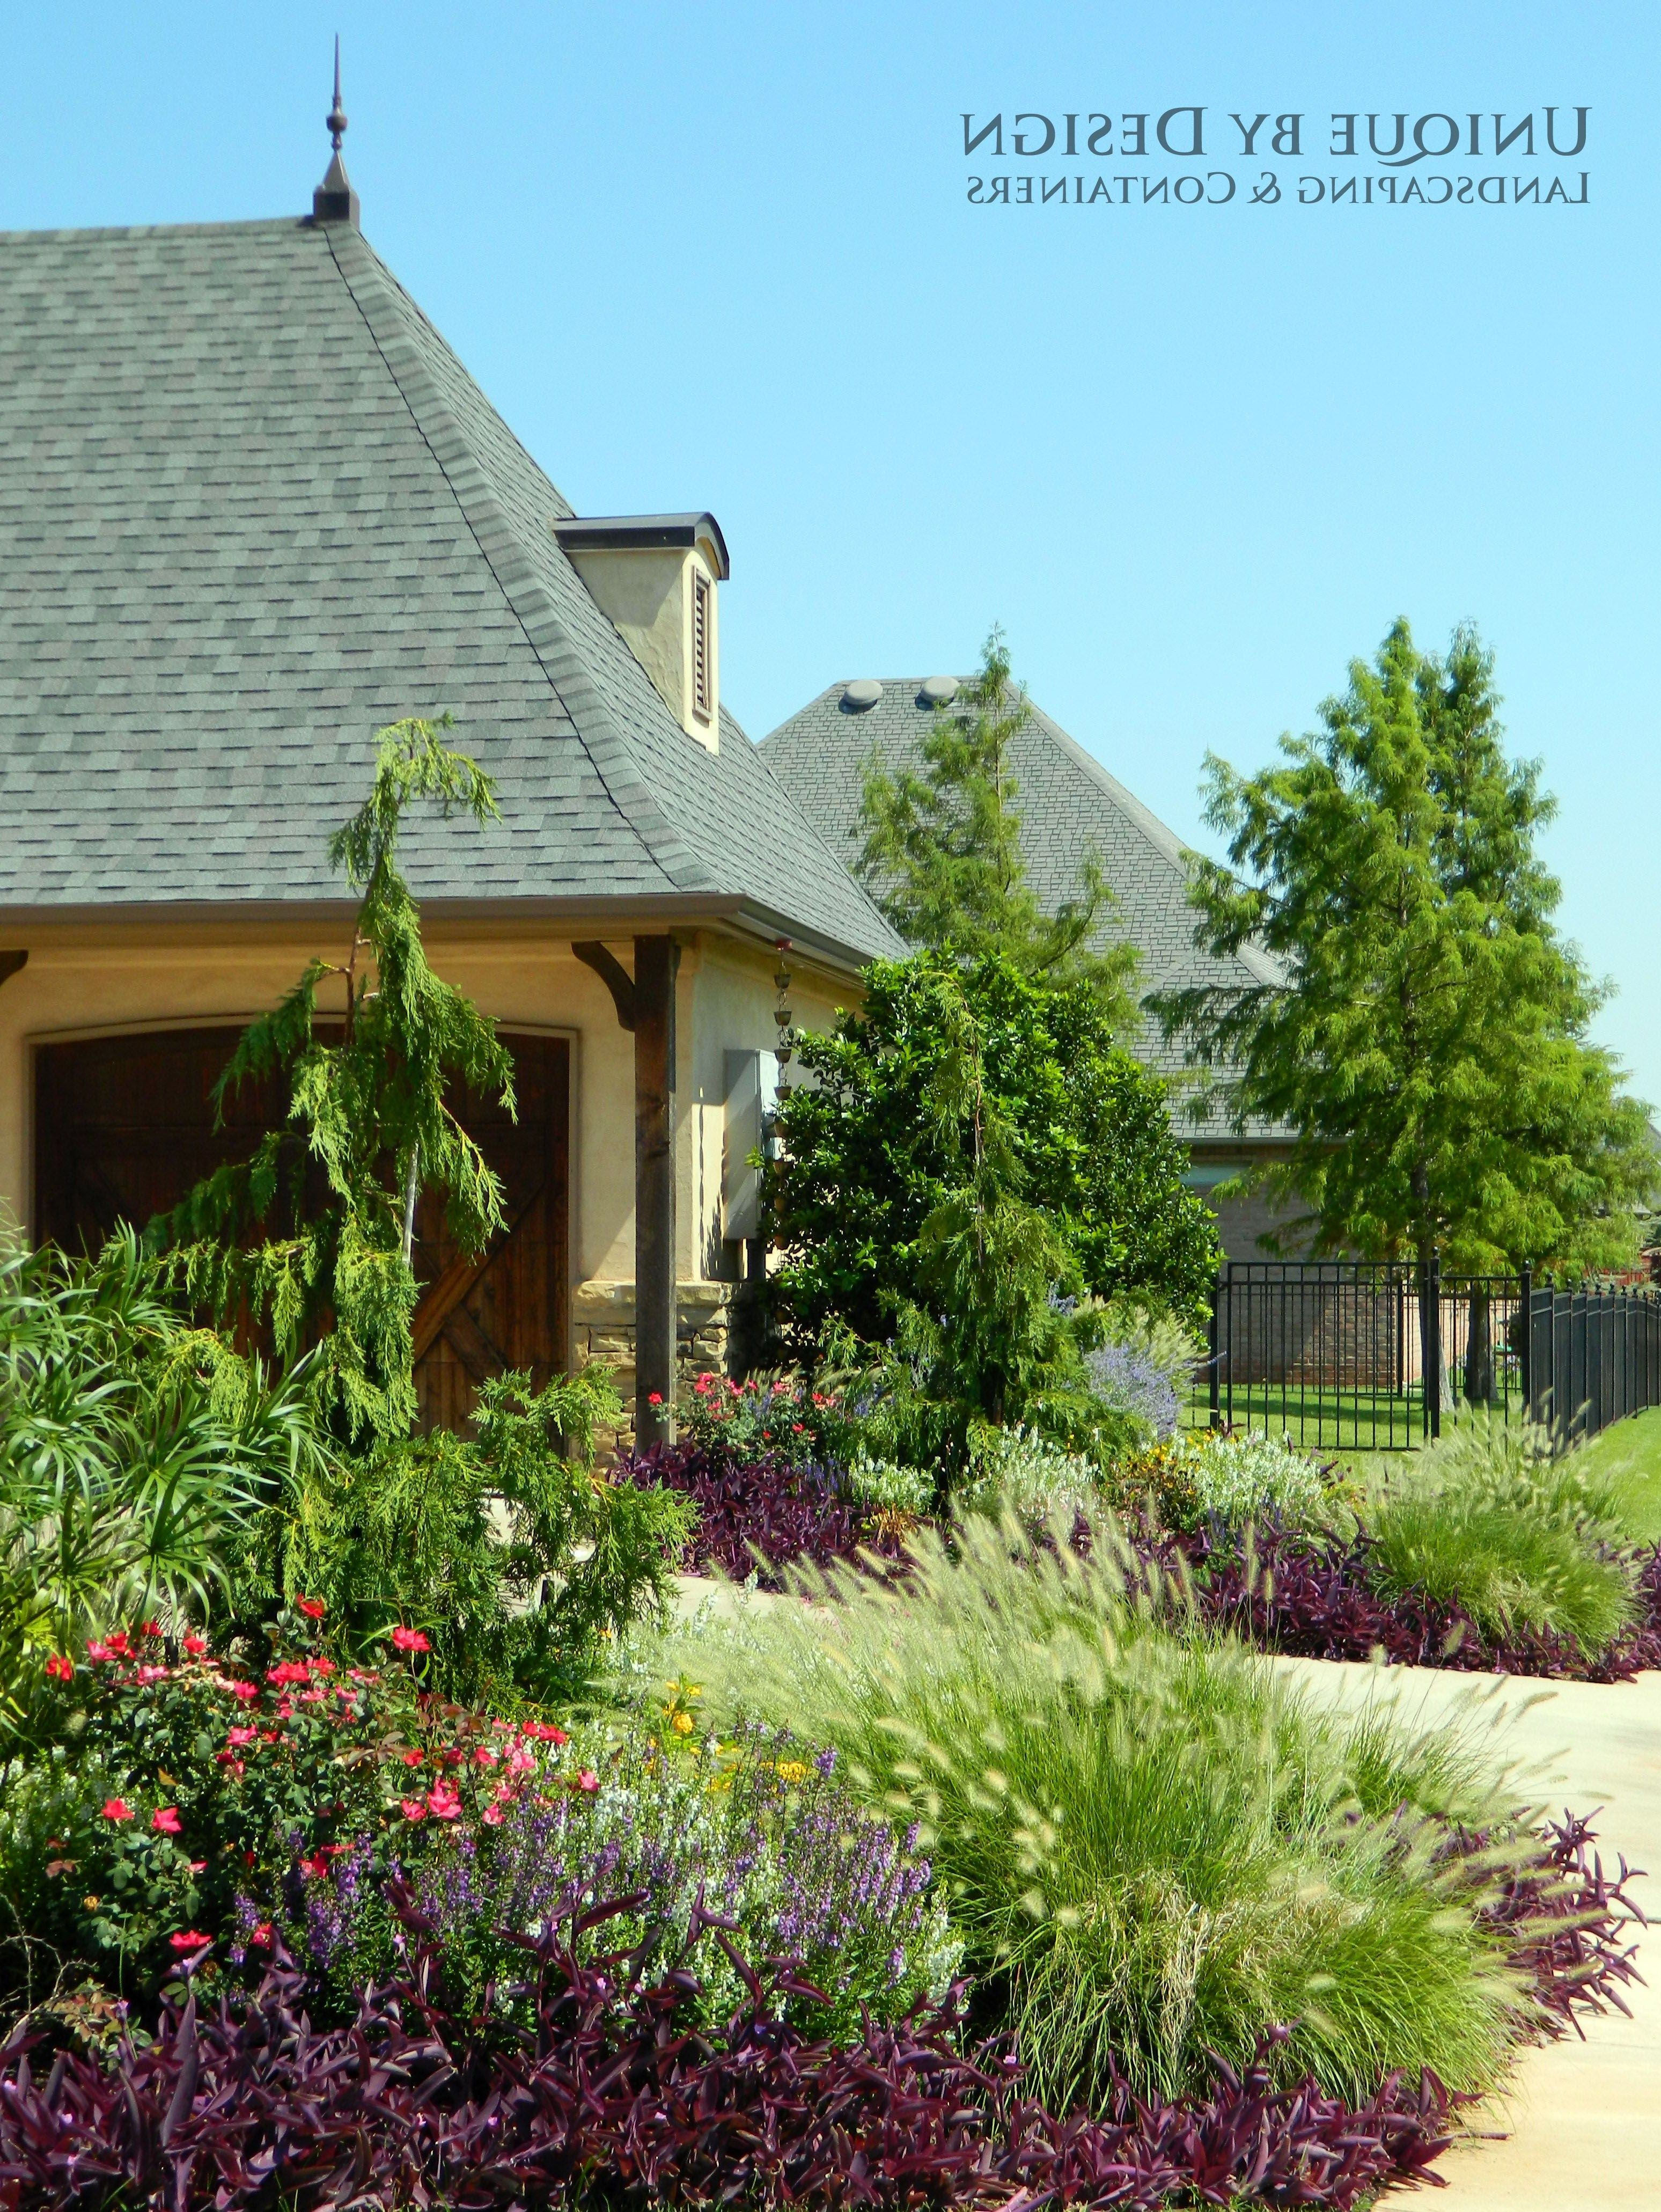 10 Awesome Landscaping Ideas For Split Level Homes split level landscaping curb appeal and adding curb appeal with new 2020